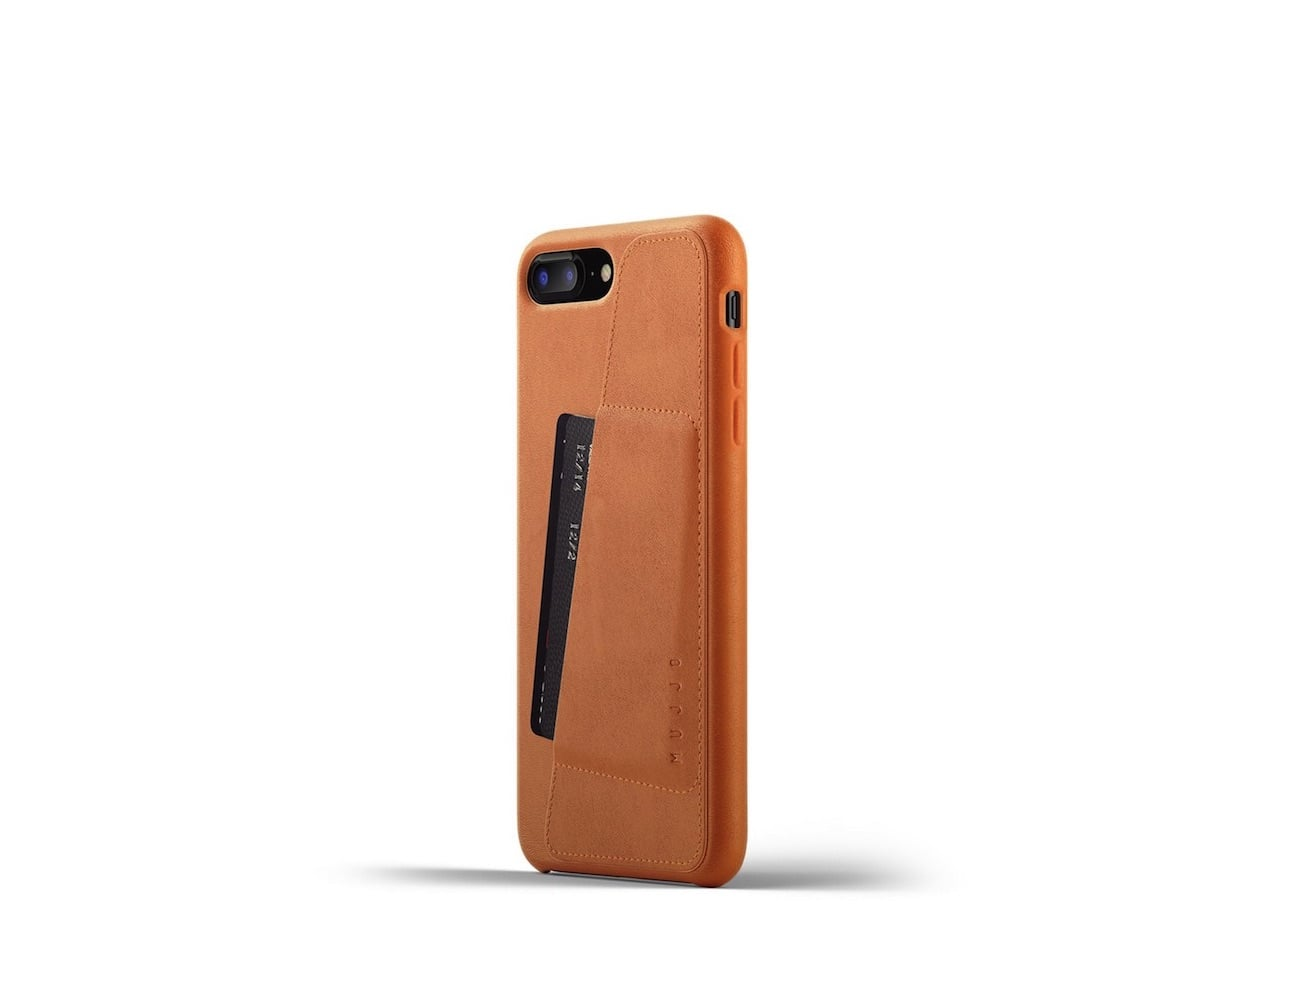 iPhone 8 Plus Leather Wallet Case by Mujjo